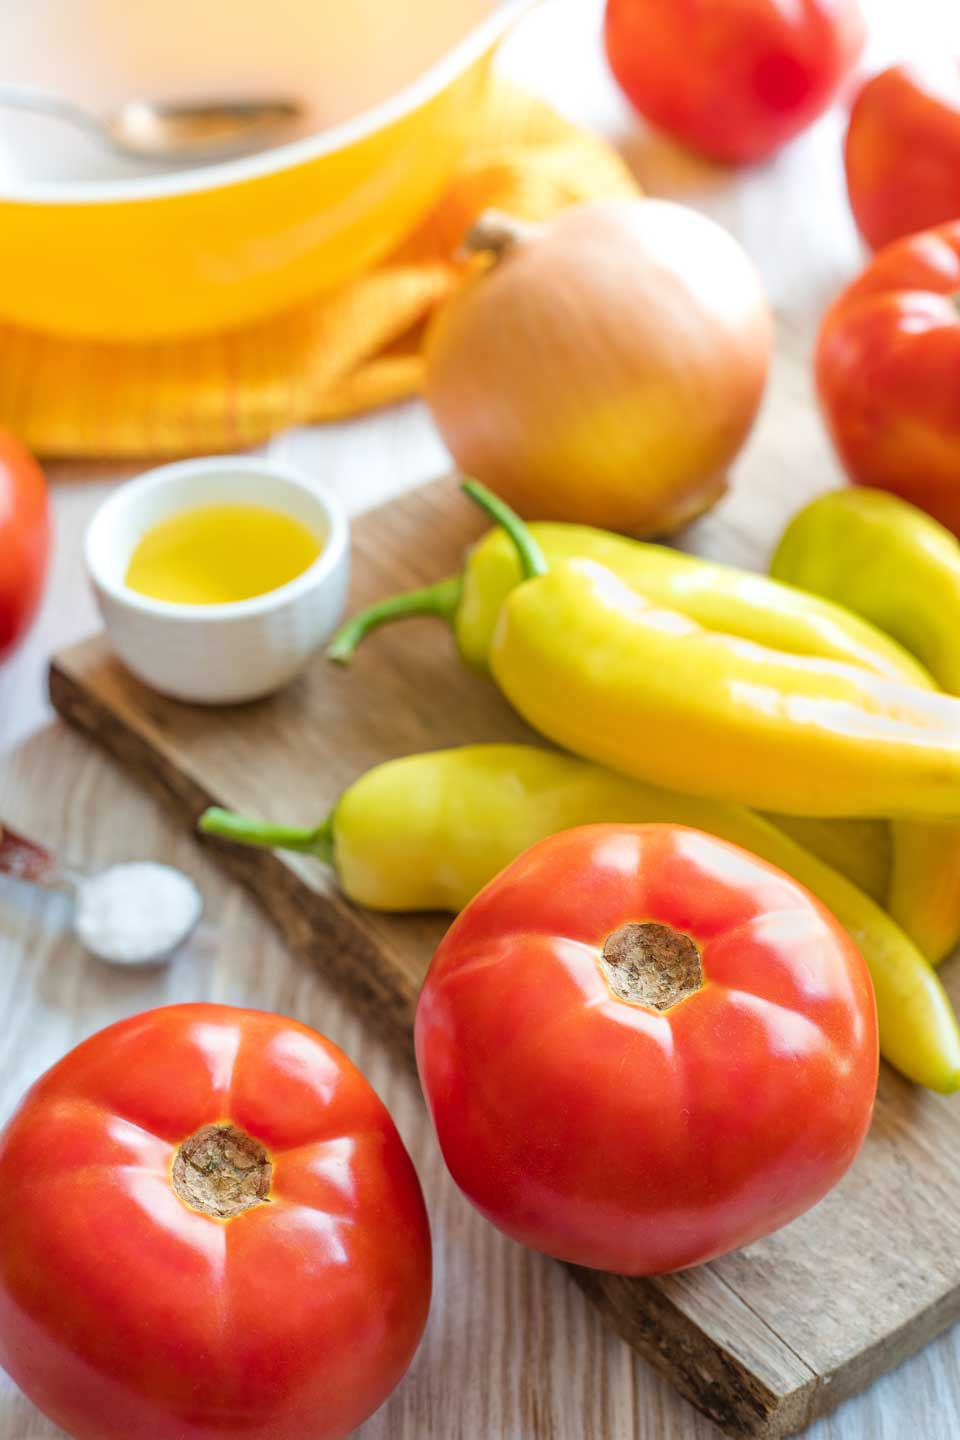 Two tomatoes, four yellow peppers and onion on cutting board, with extra ingredients and tomatoes nearby.